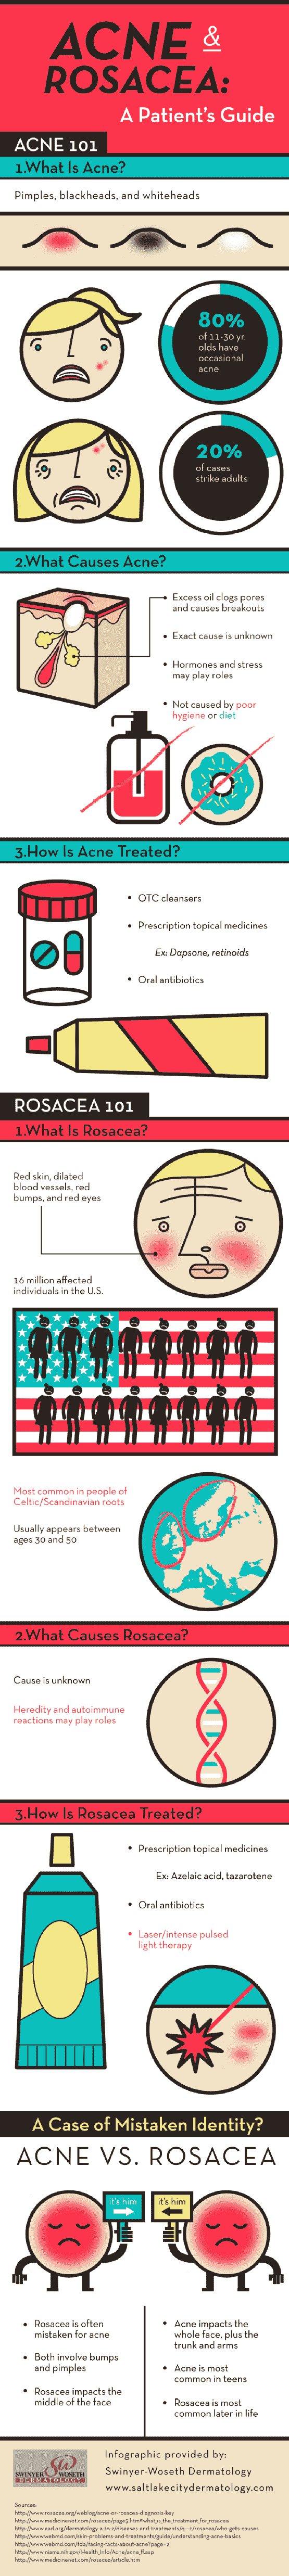 Acne and Rosacea A Patients Guide Infographic